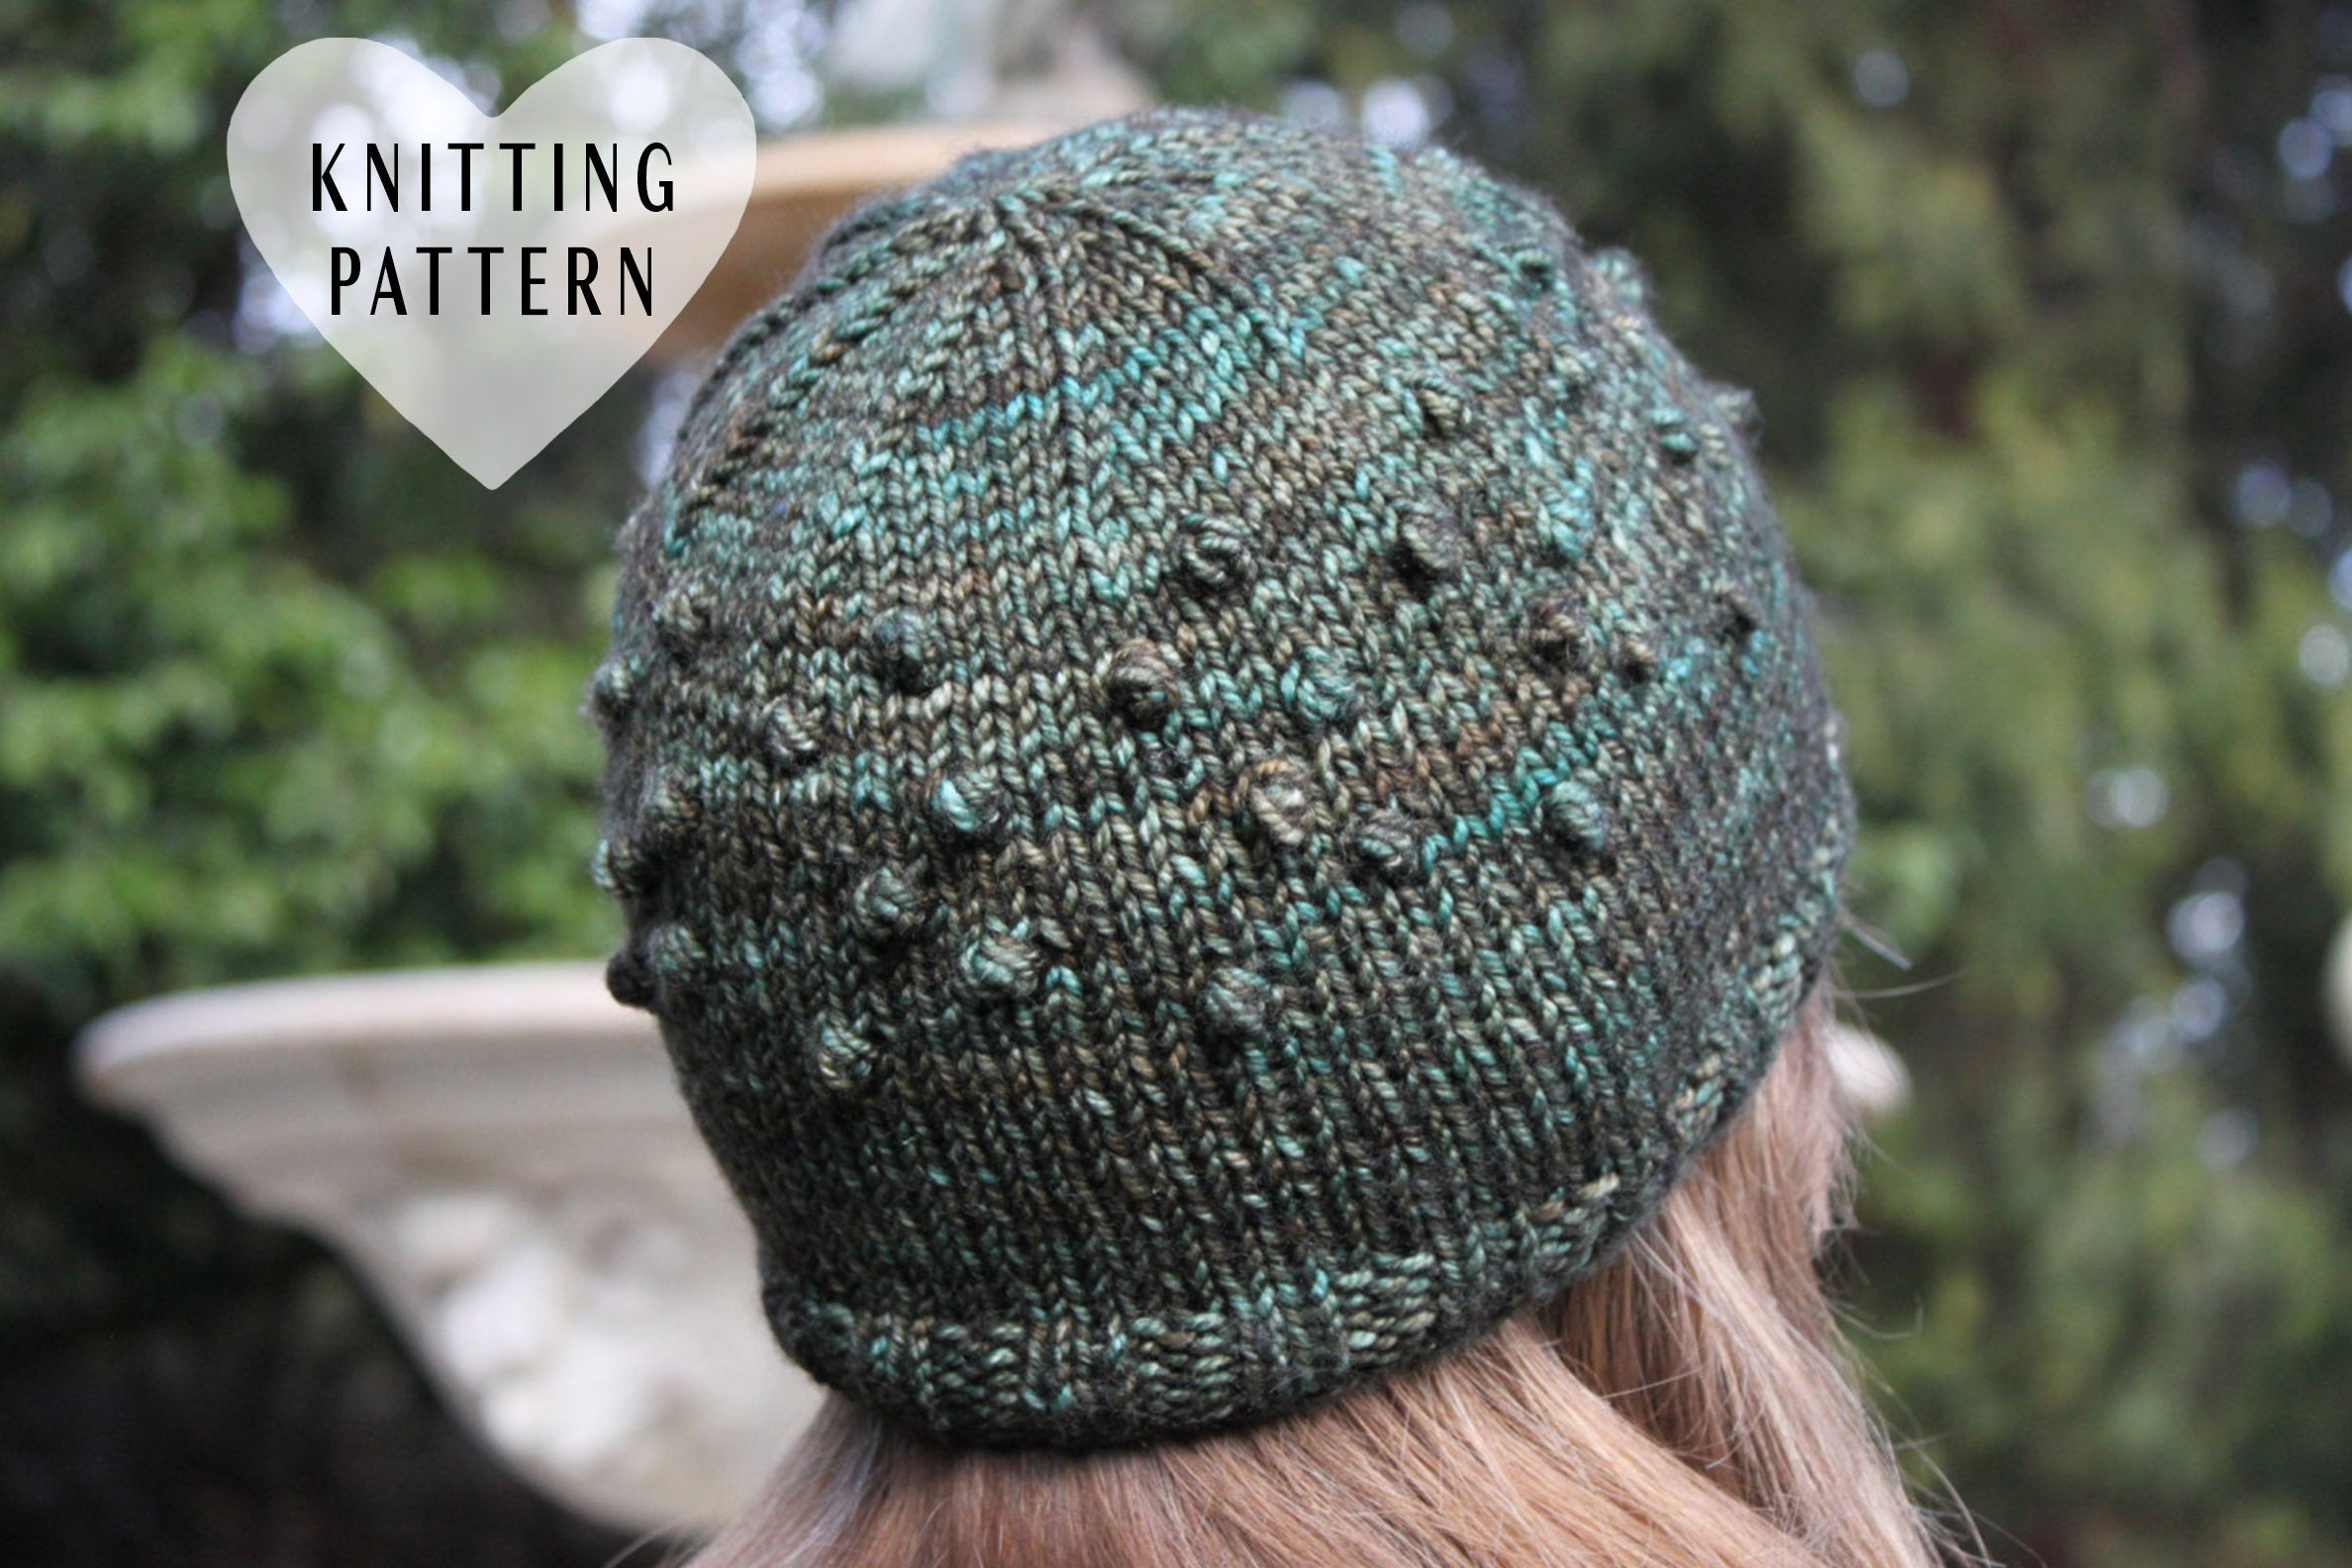 Knitting Pattern Bobble Hat Knitting Pattern Bobble Hat Knit Knitted Adult Size Green Hat Beanie Fleece Lined Madelinetosh